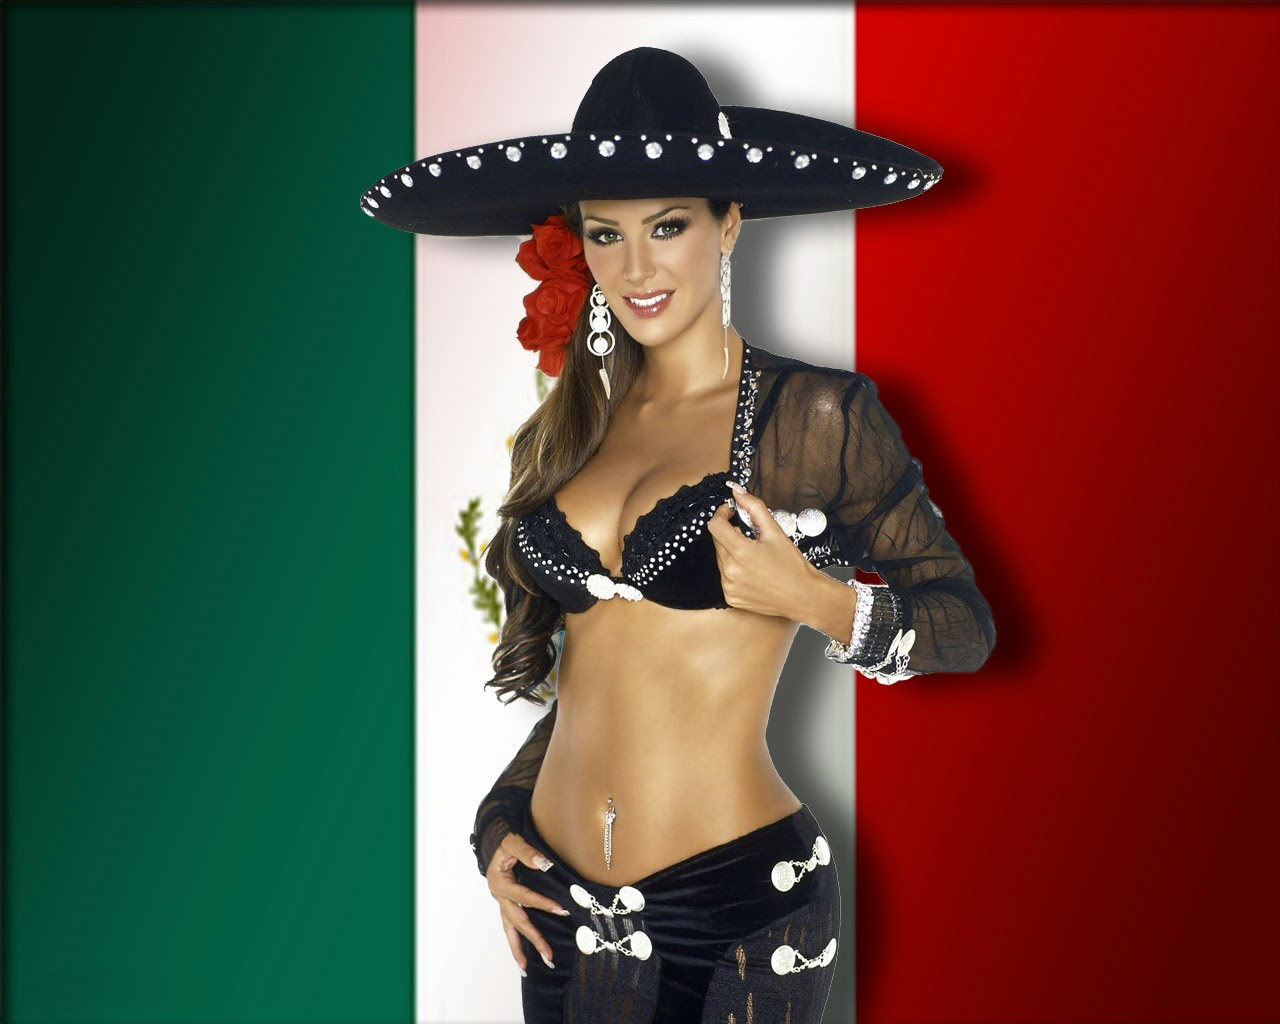 Do you love the beauty of Mexican girls?